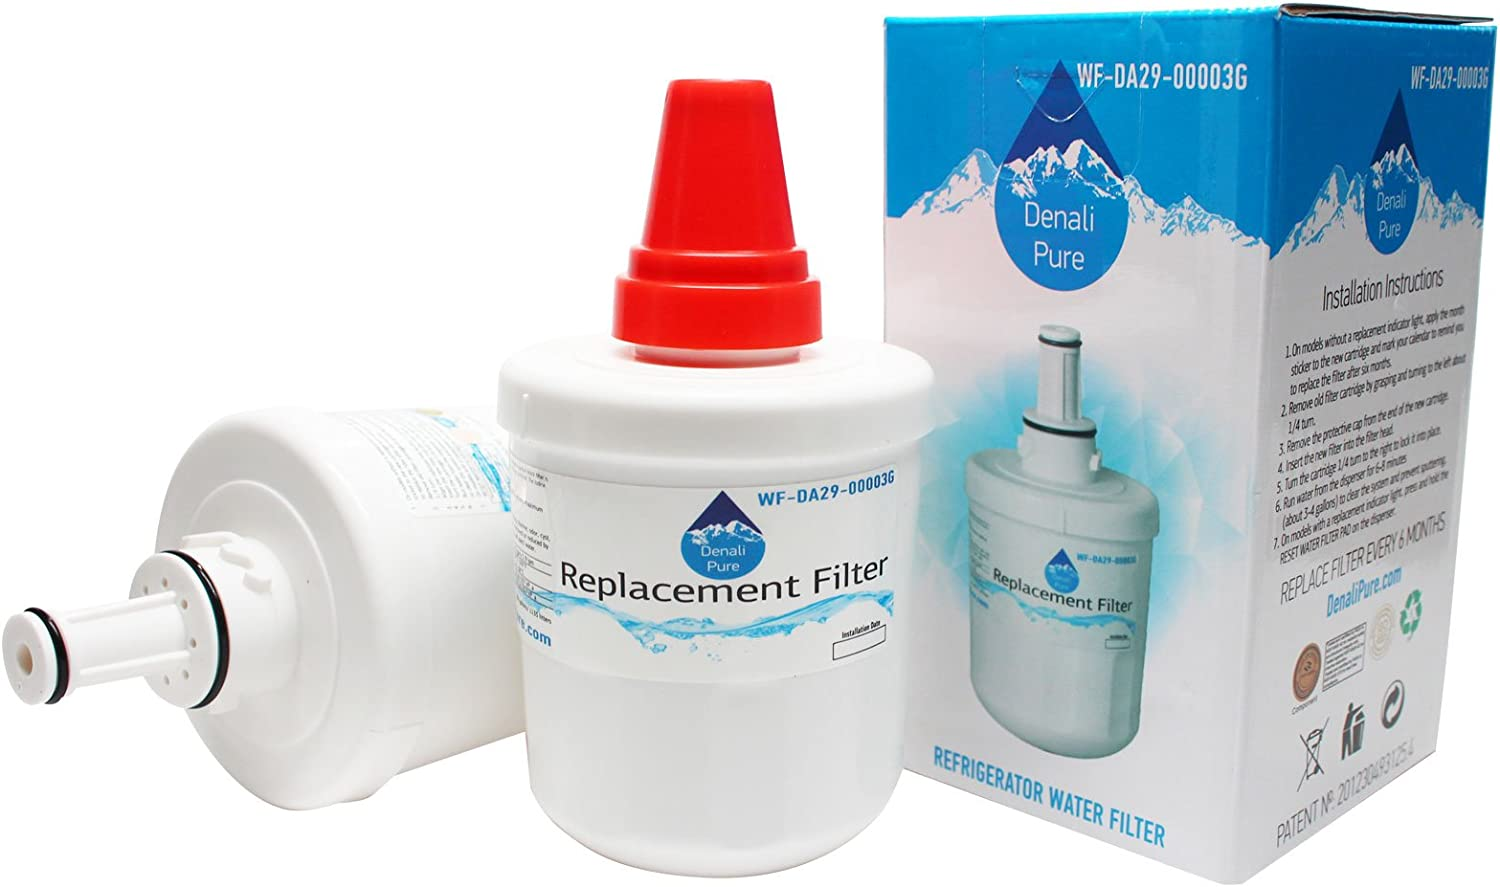 2-Pack Replacement for Samsung RFG237AARS Refrigerator Water Filter - Compatible with Samsung DA29-00003G, Samsung DA29-00003B, Samsung DA29-00003A Fridge Water Filter Cartridge